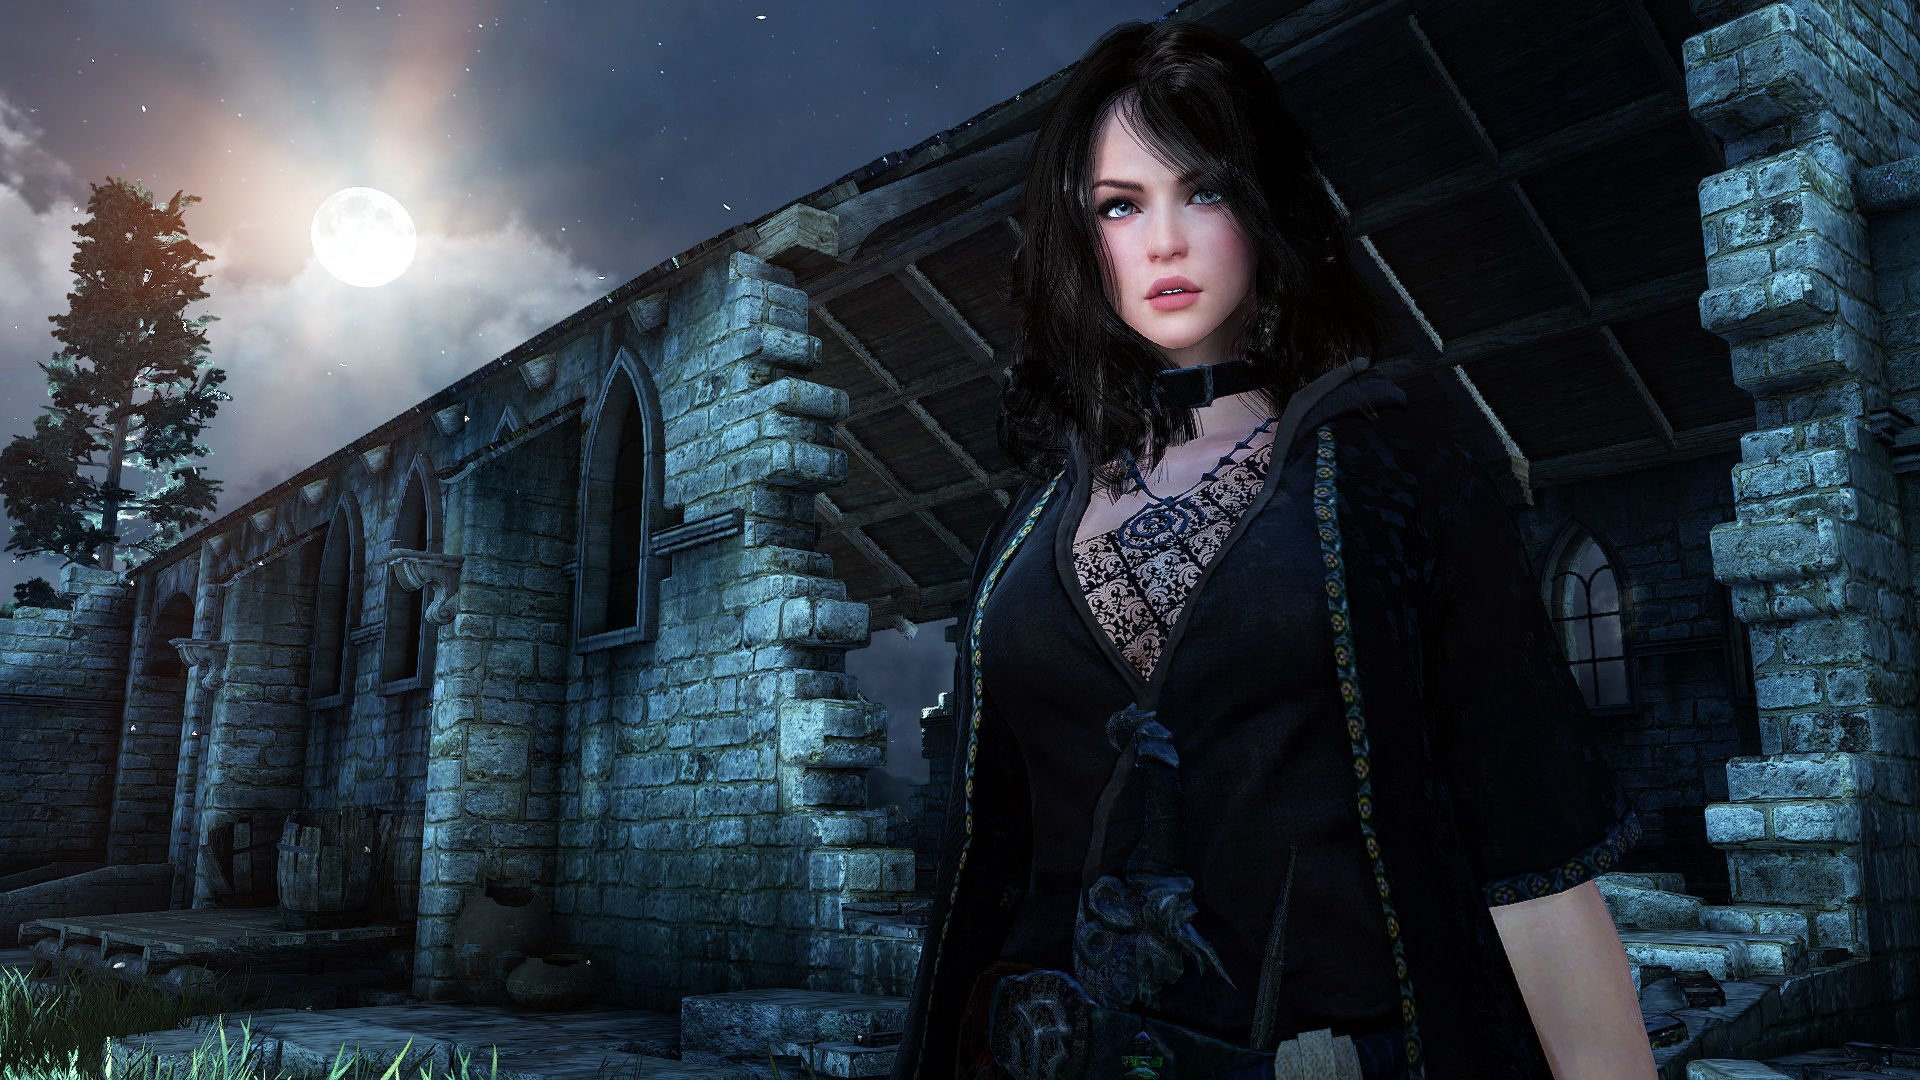 black desert online mmo rpg fantasy fighting action